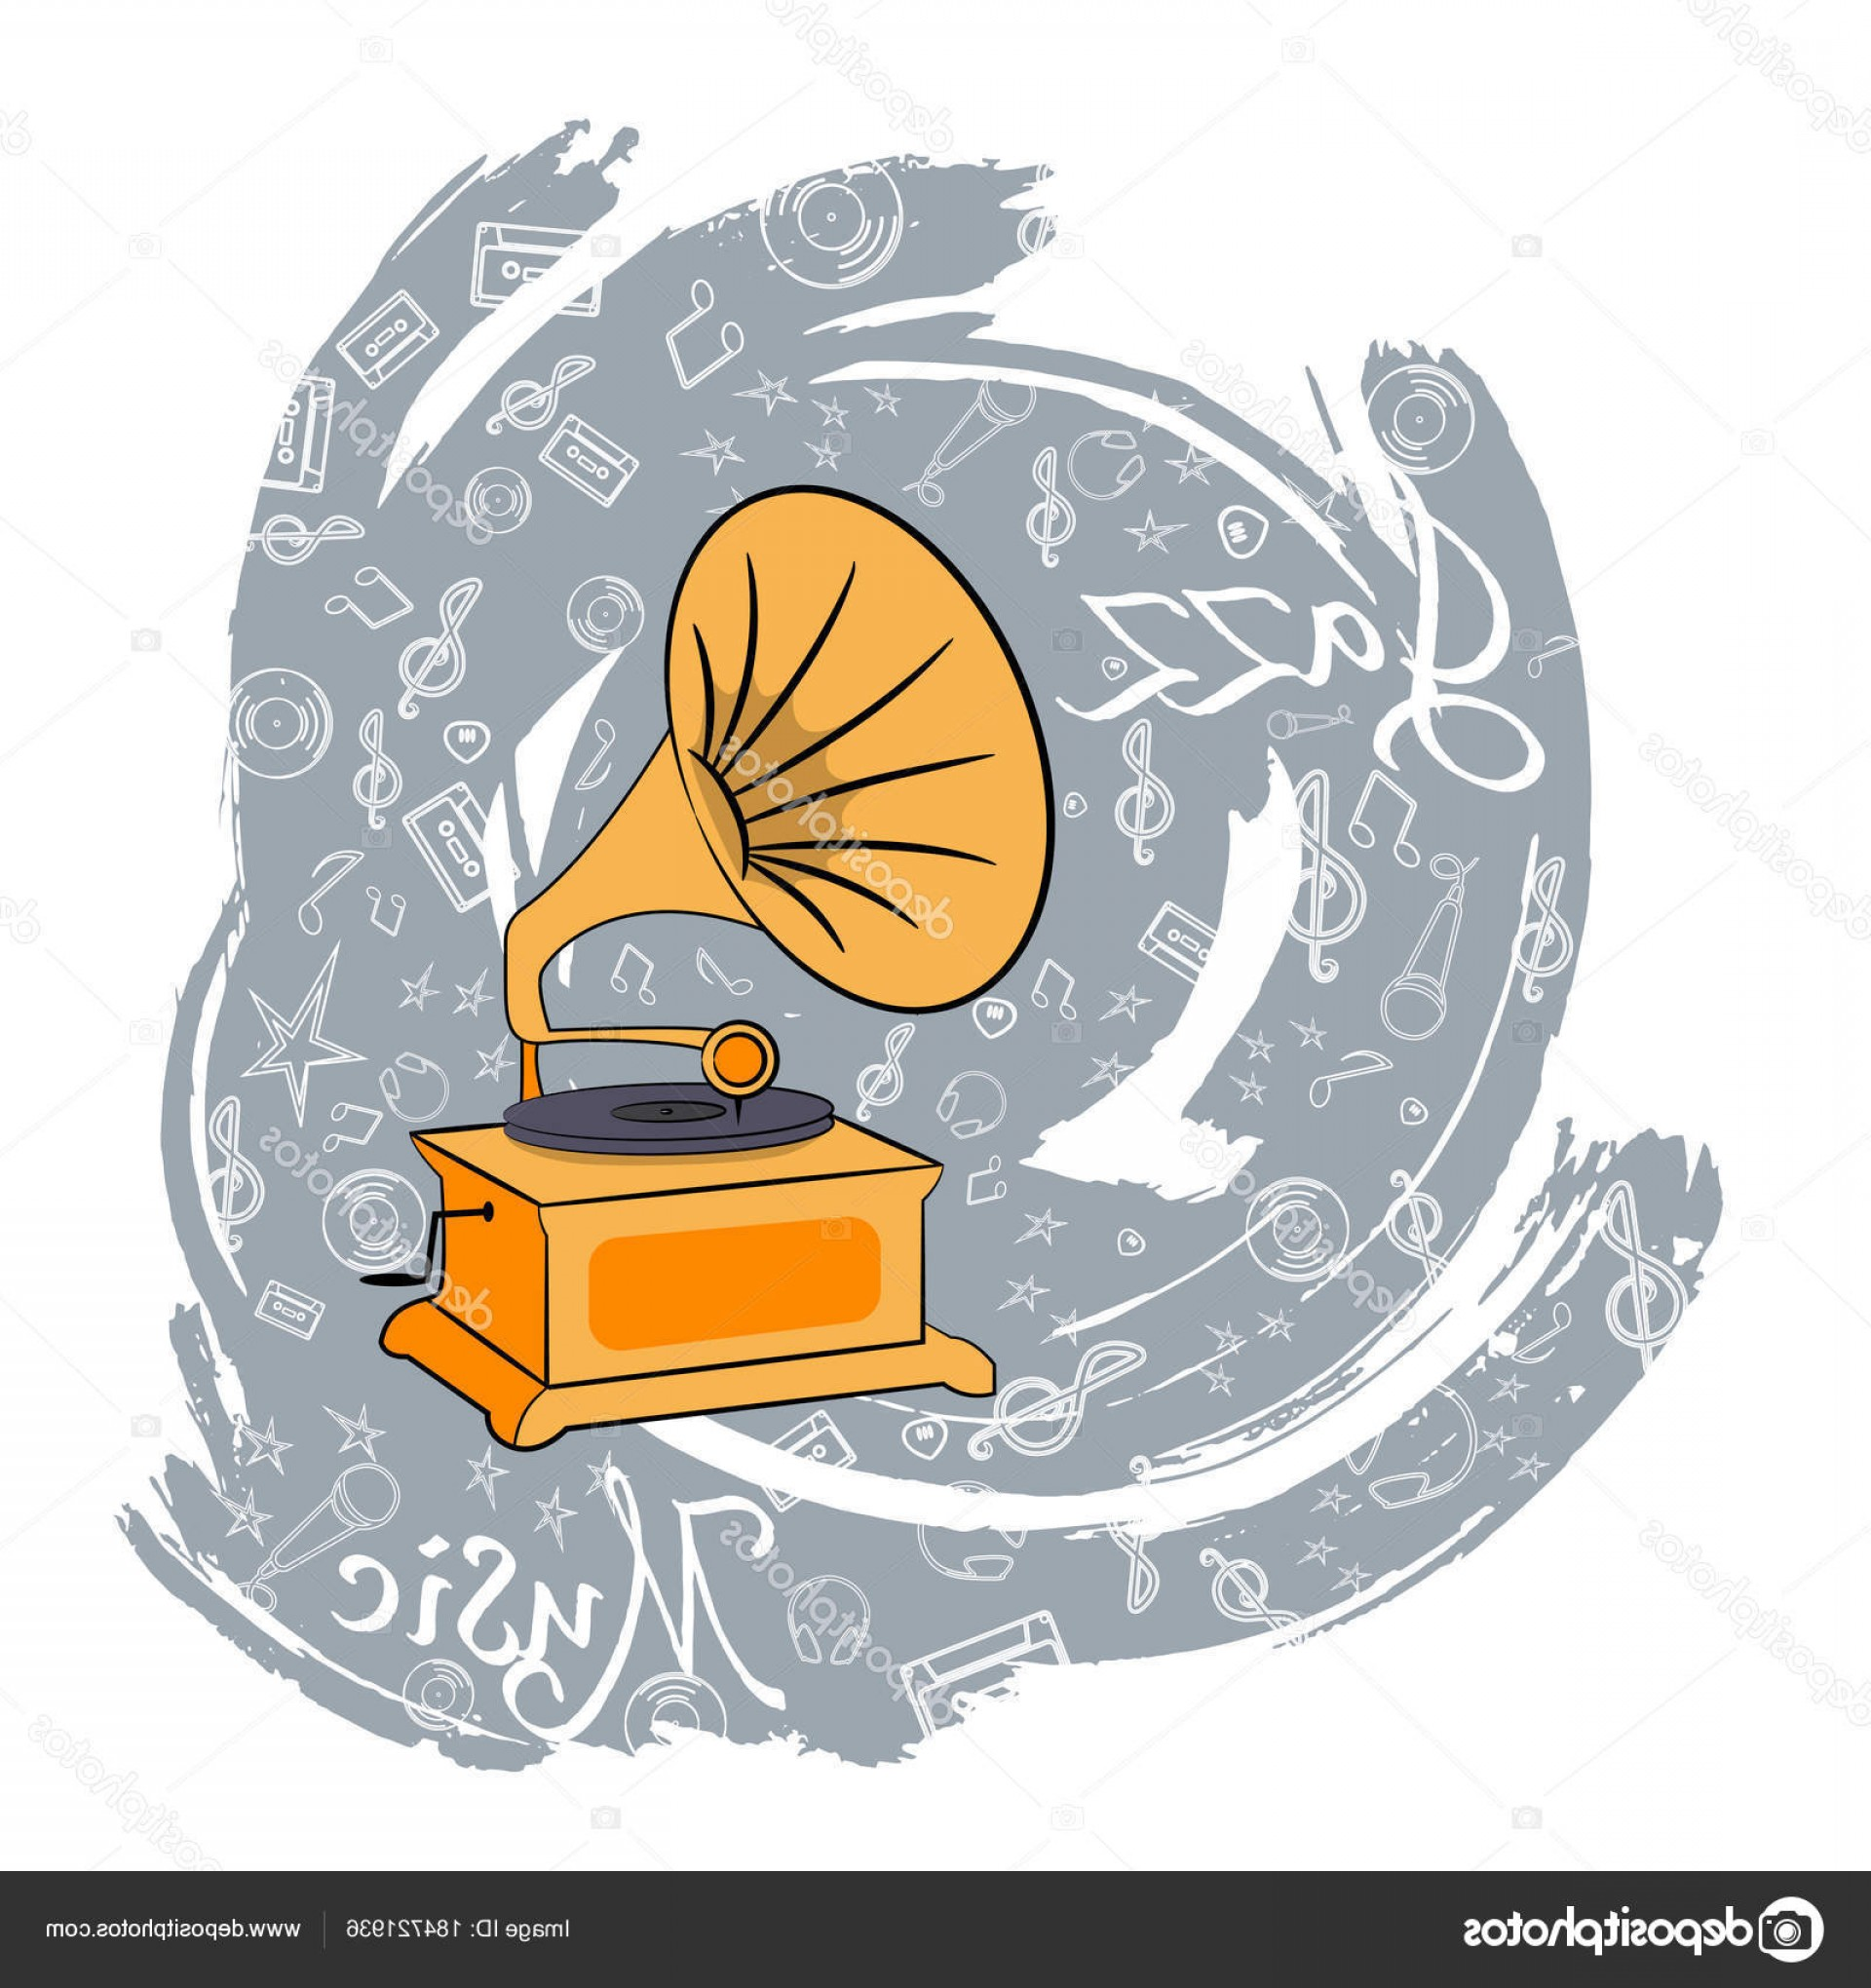 Vinyl Vector Tools: Stock Illustration Jazz Tools Abstraction